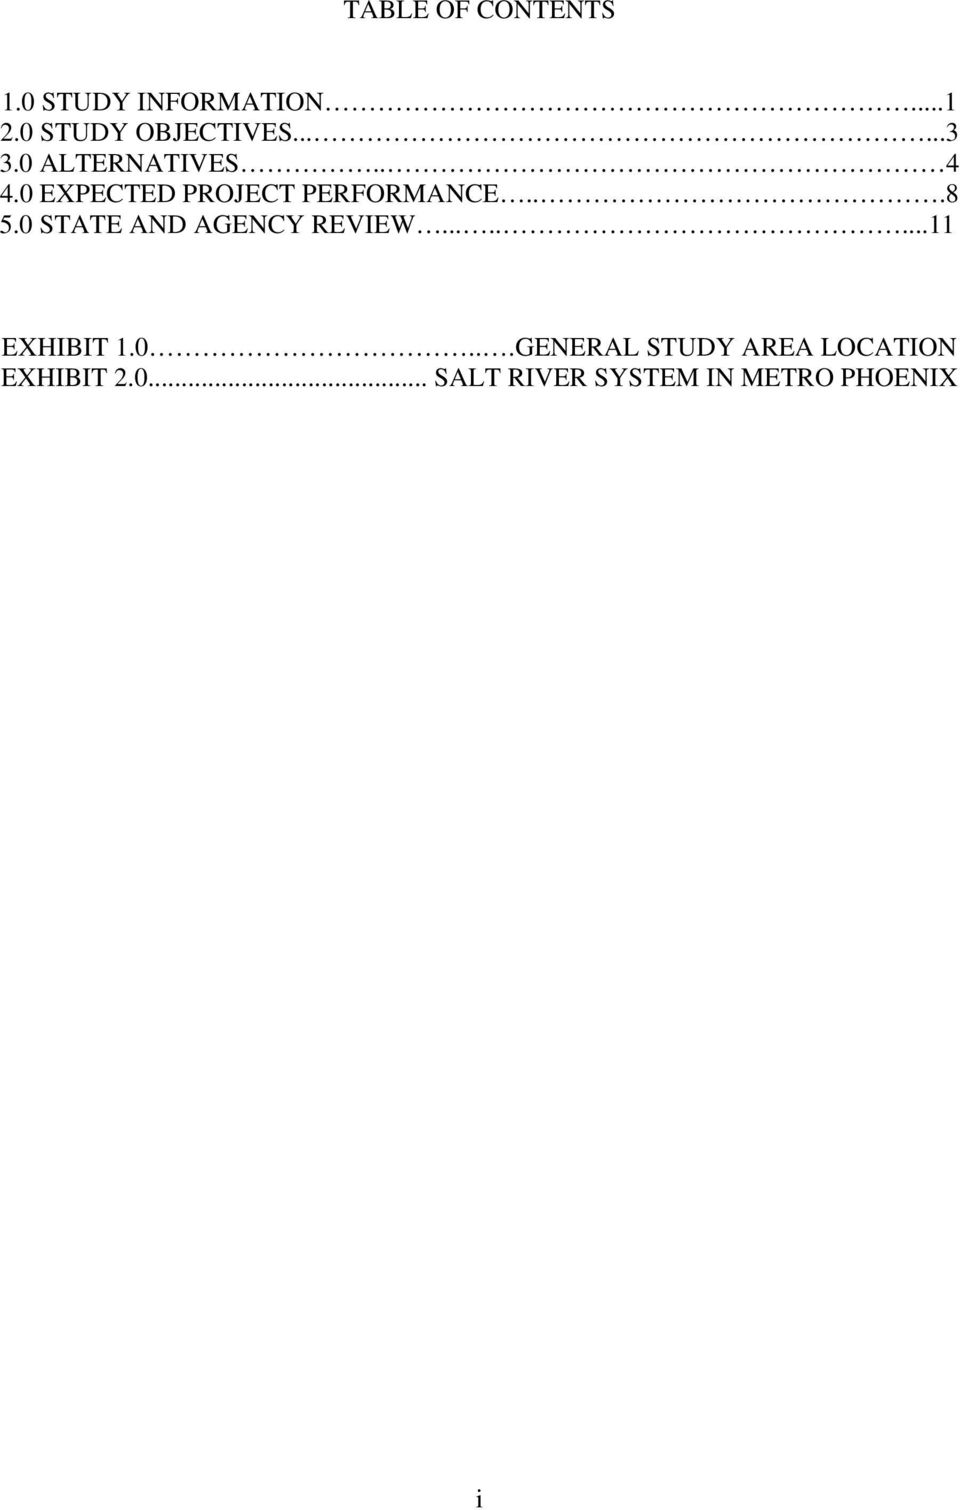 0 STATE AND AGENCY REVIEW........11 EXHIBIT 1.0...GENERAL STUDY AREA LOCATION EXHIBIT 2.